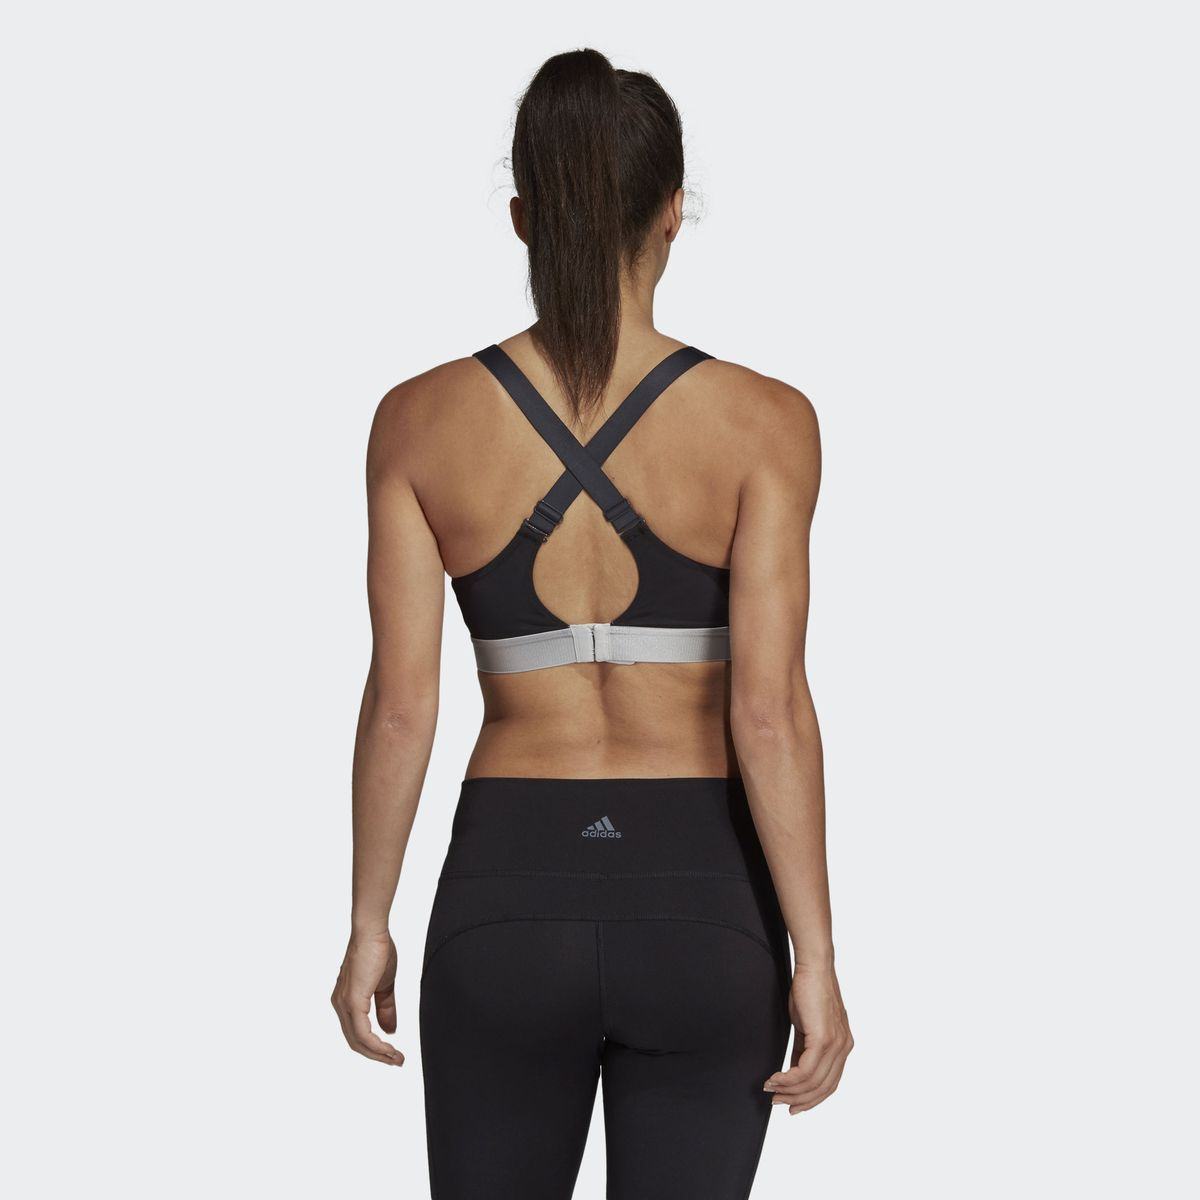 Brassière Stronger For It Soft Taille : 75 B;75 D;80 B;80